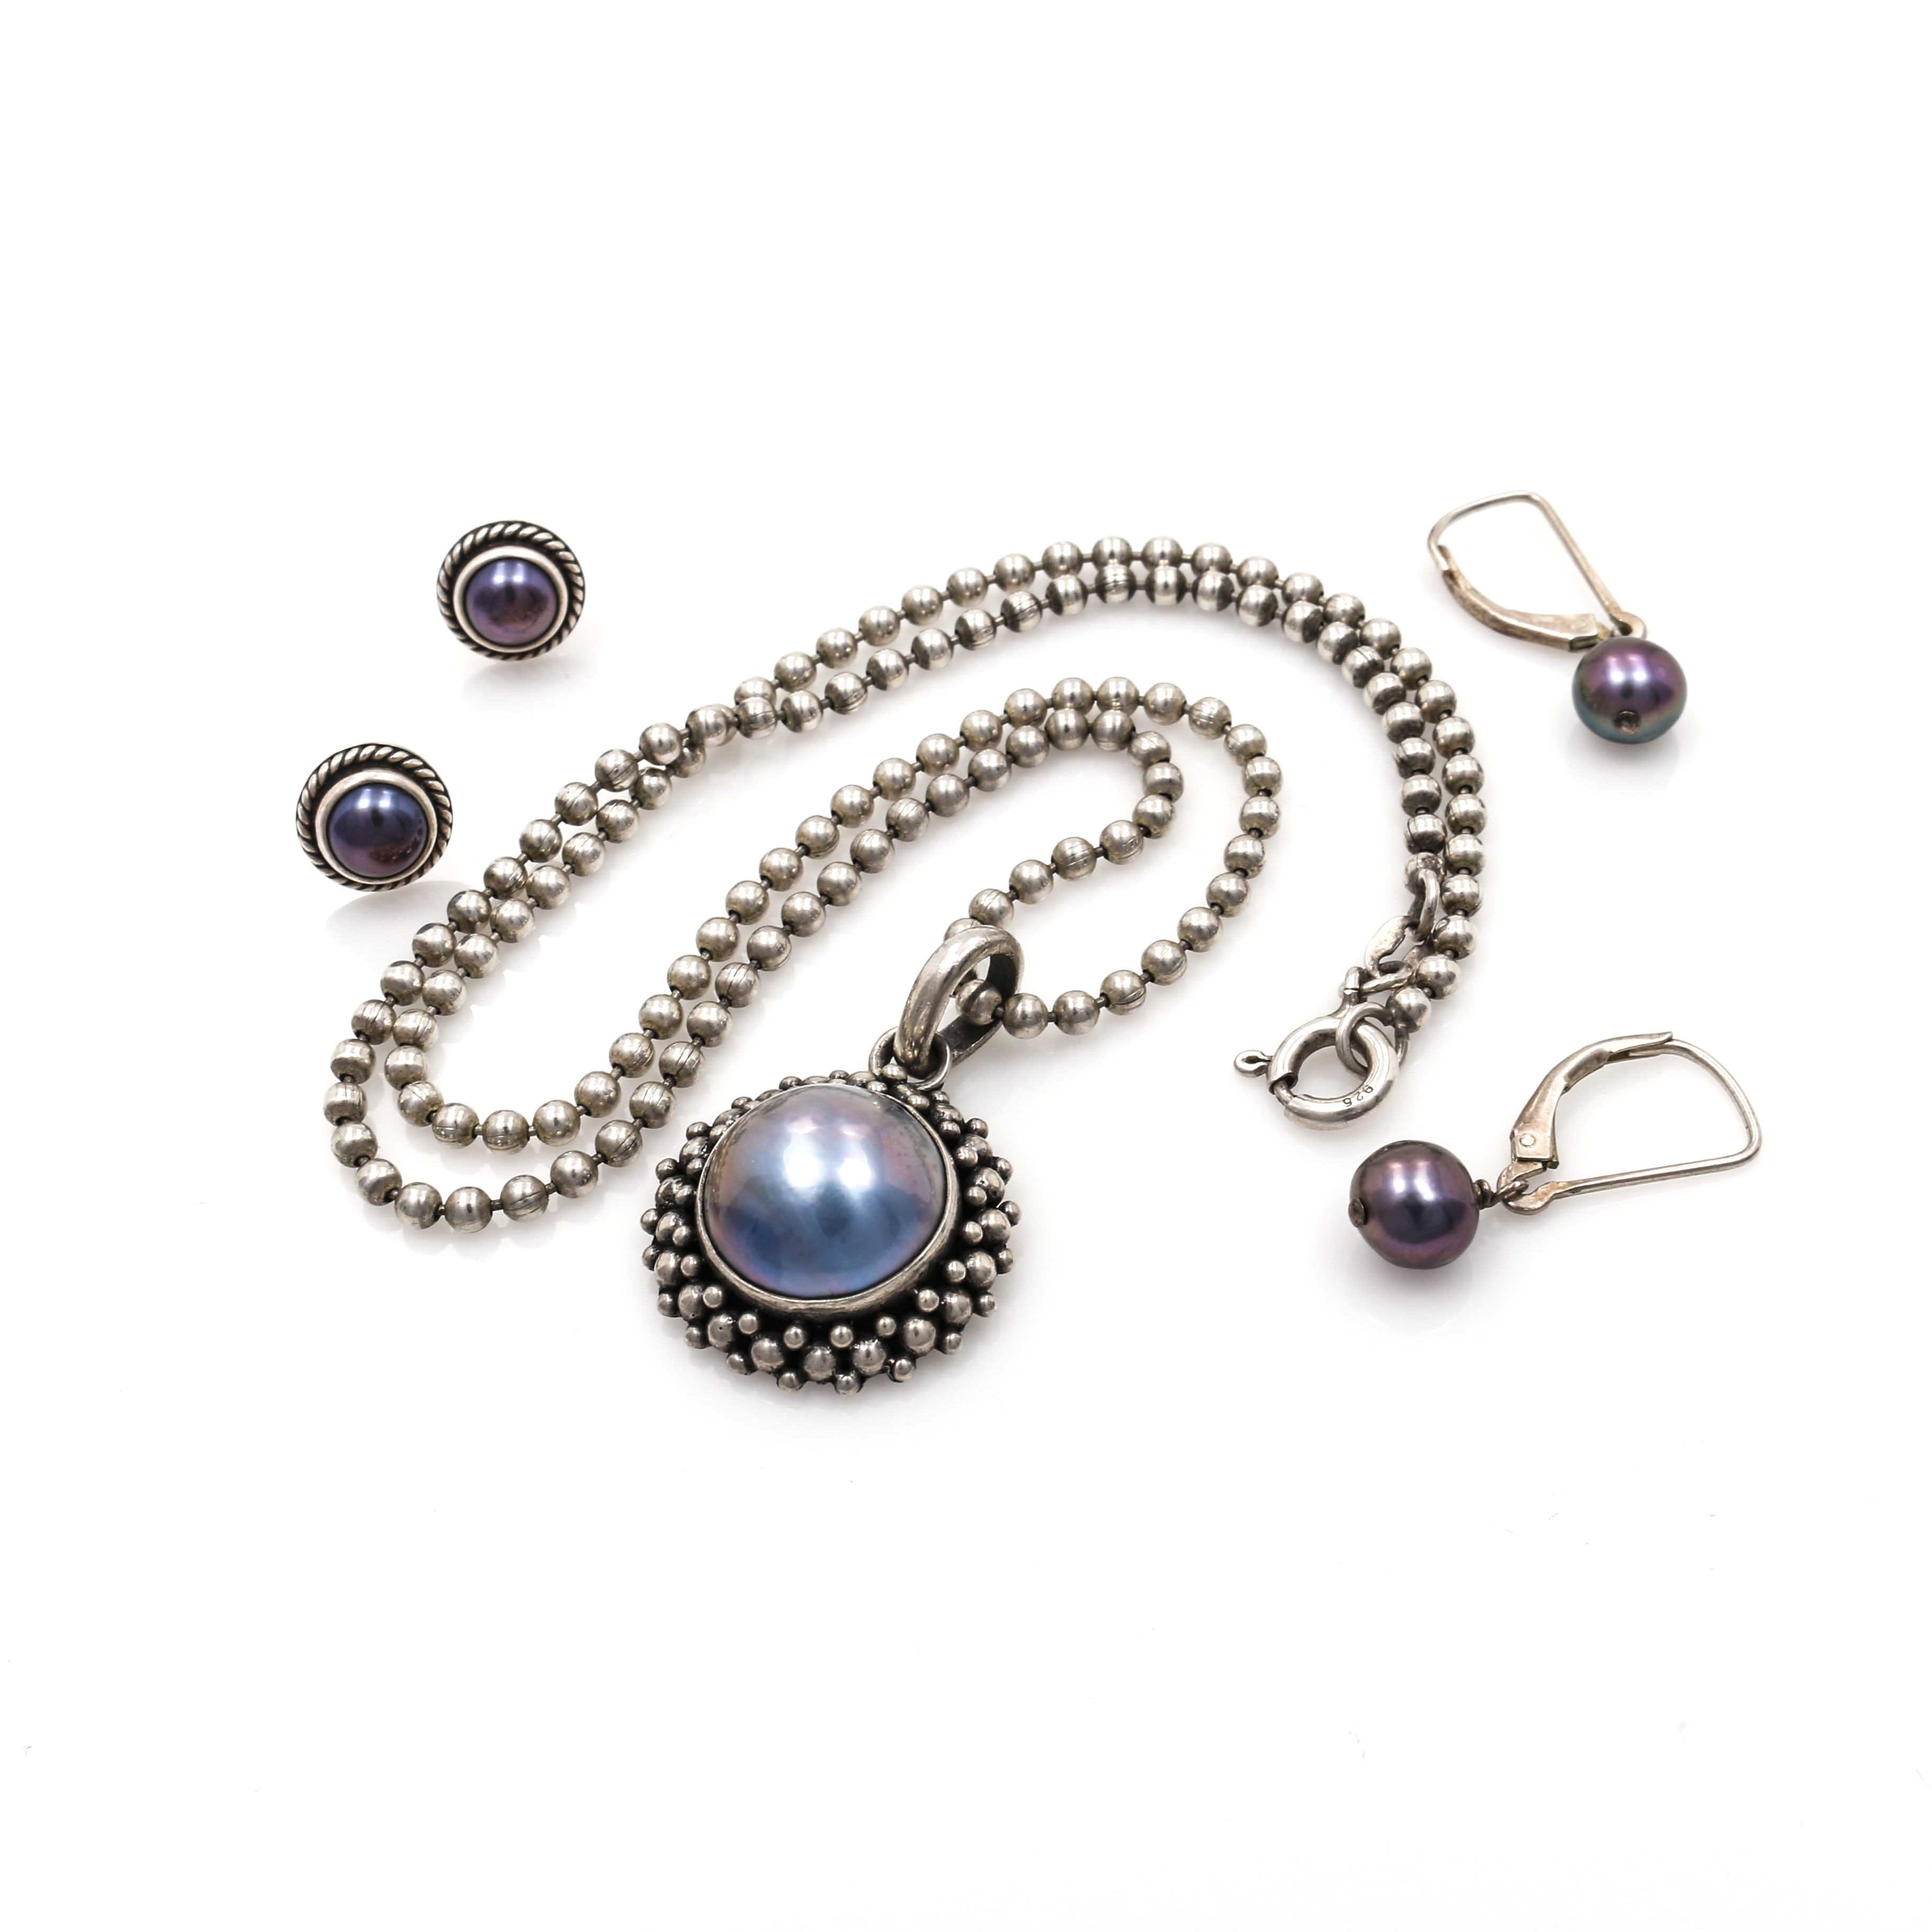 Assortment of Sterling Silver Jewelry with Cultured and Mabé Pearls